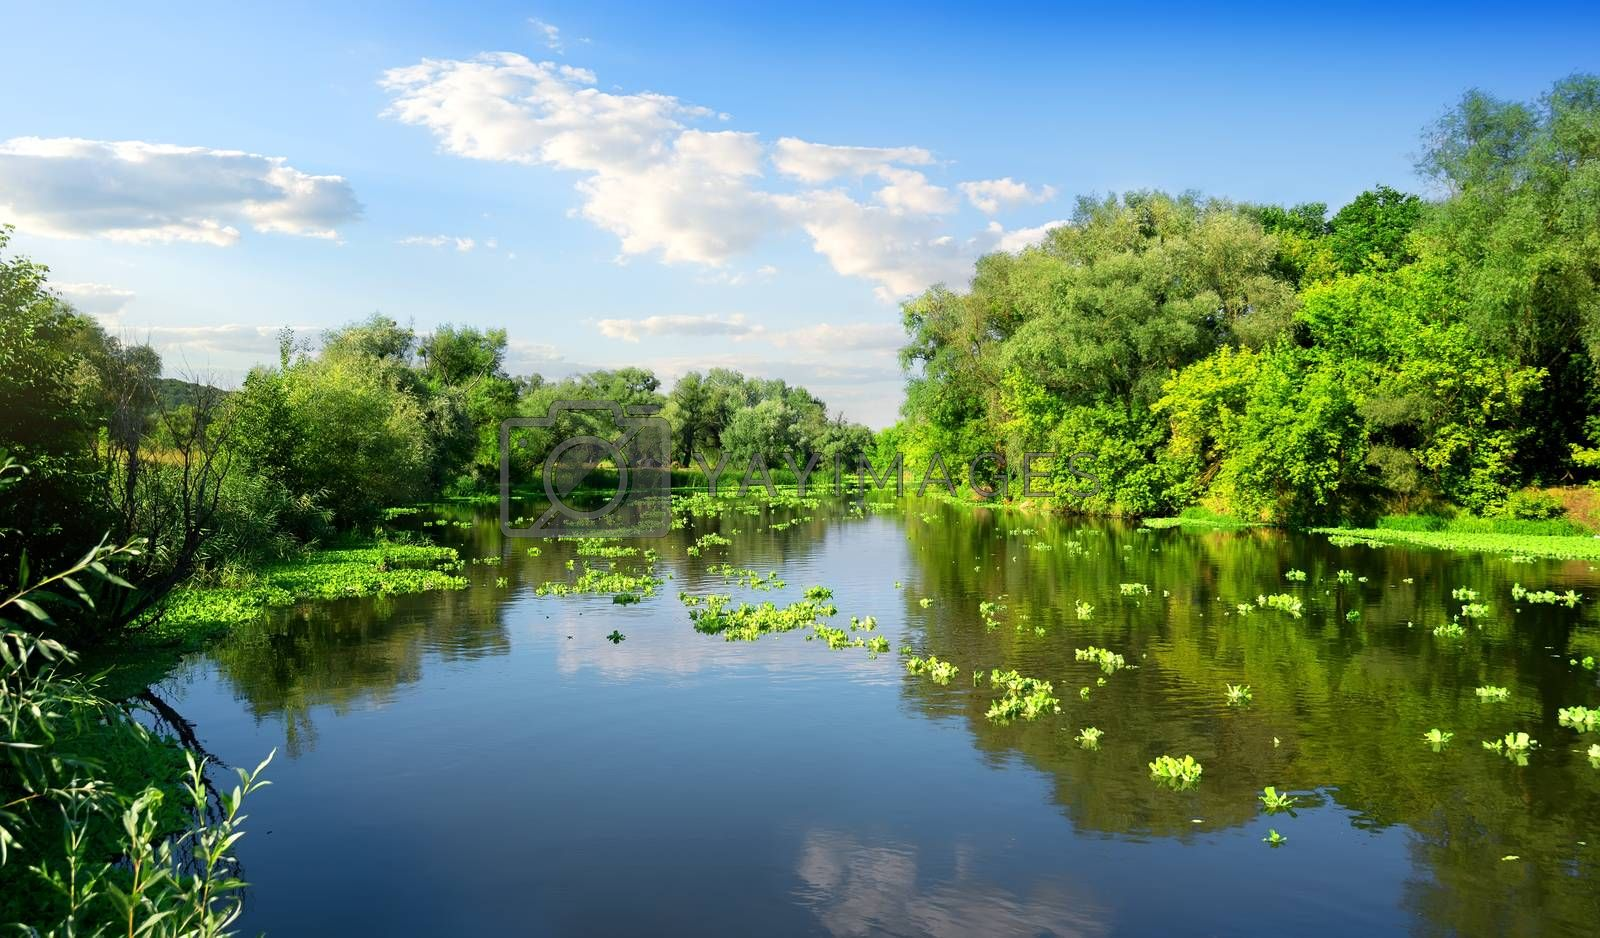 Calm river and green forest in sunny day